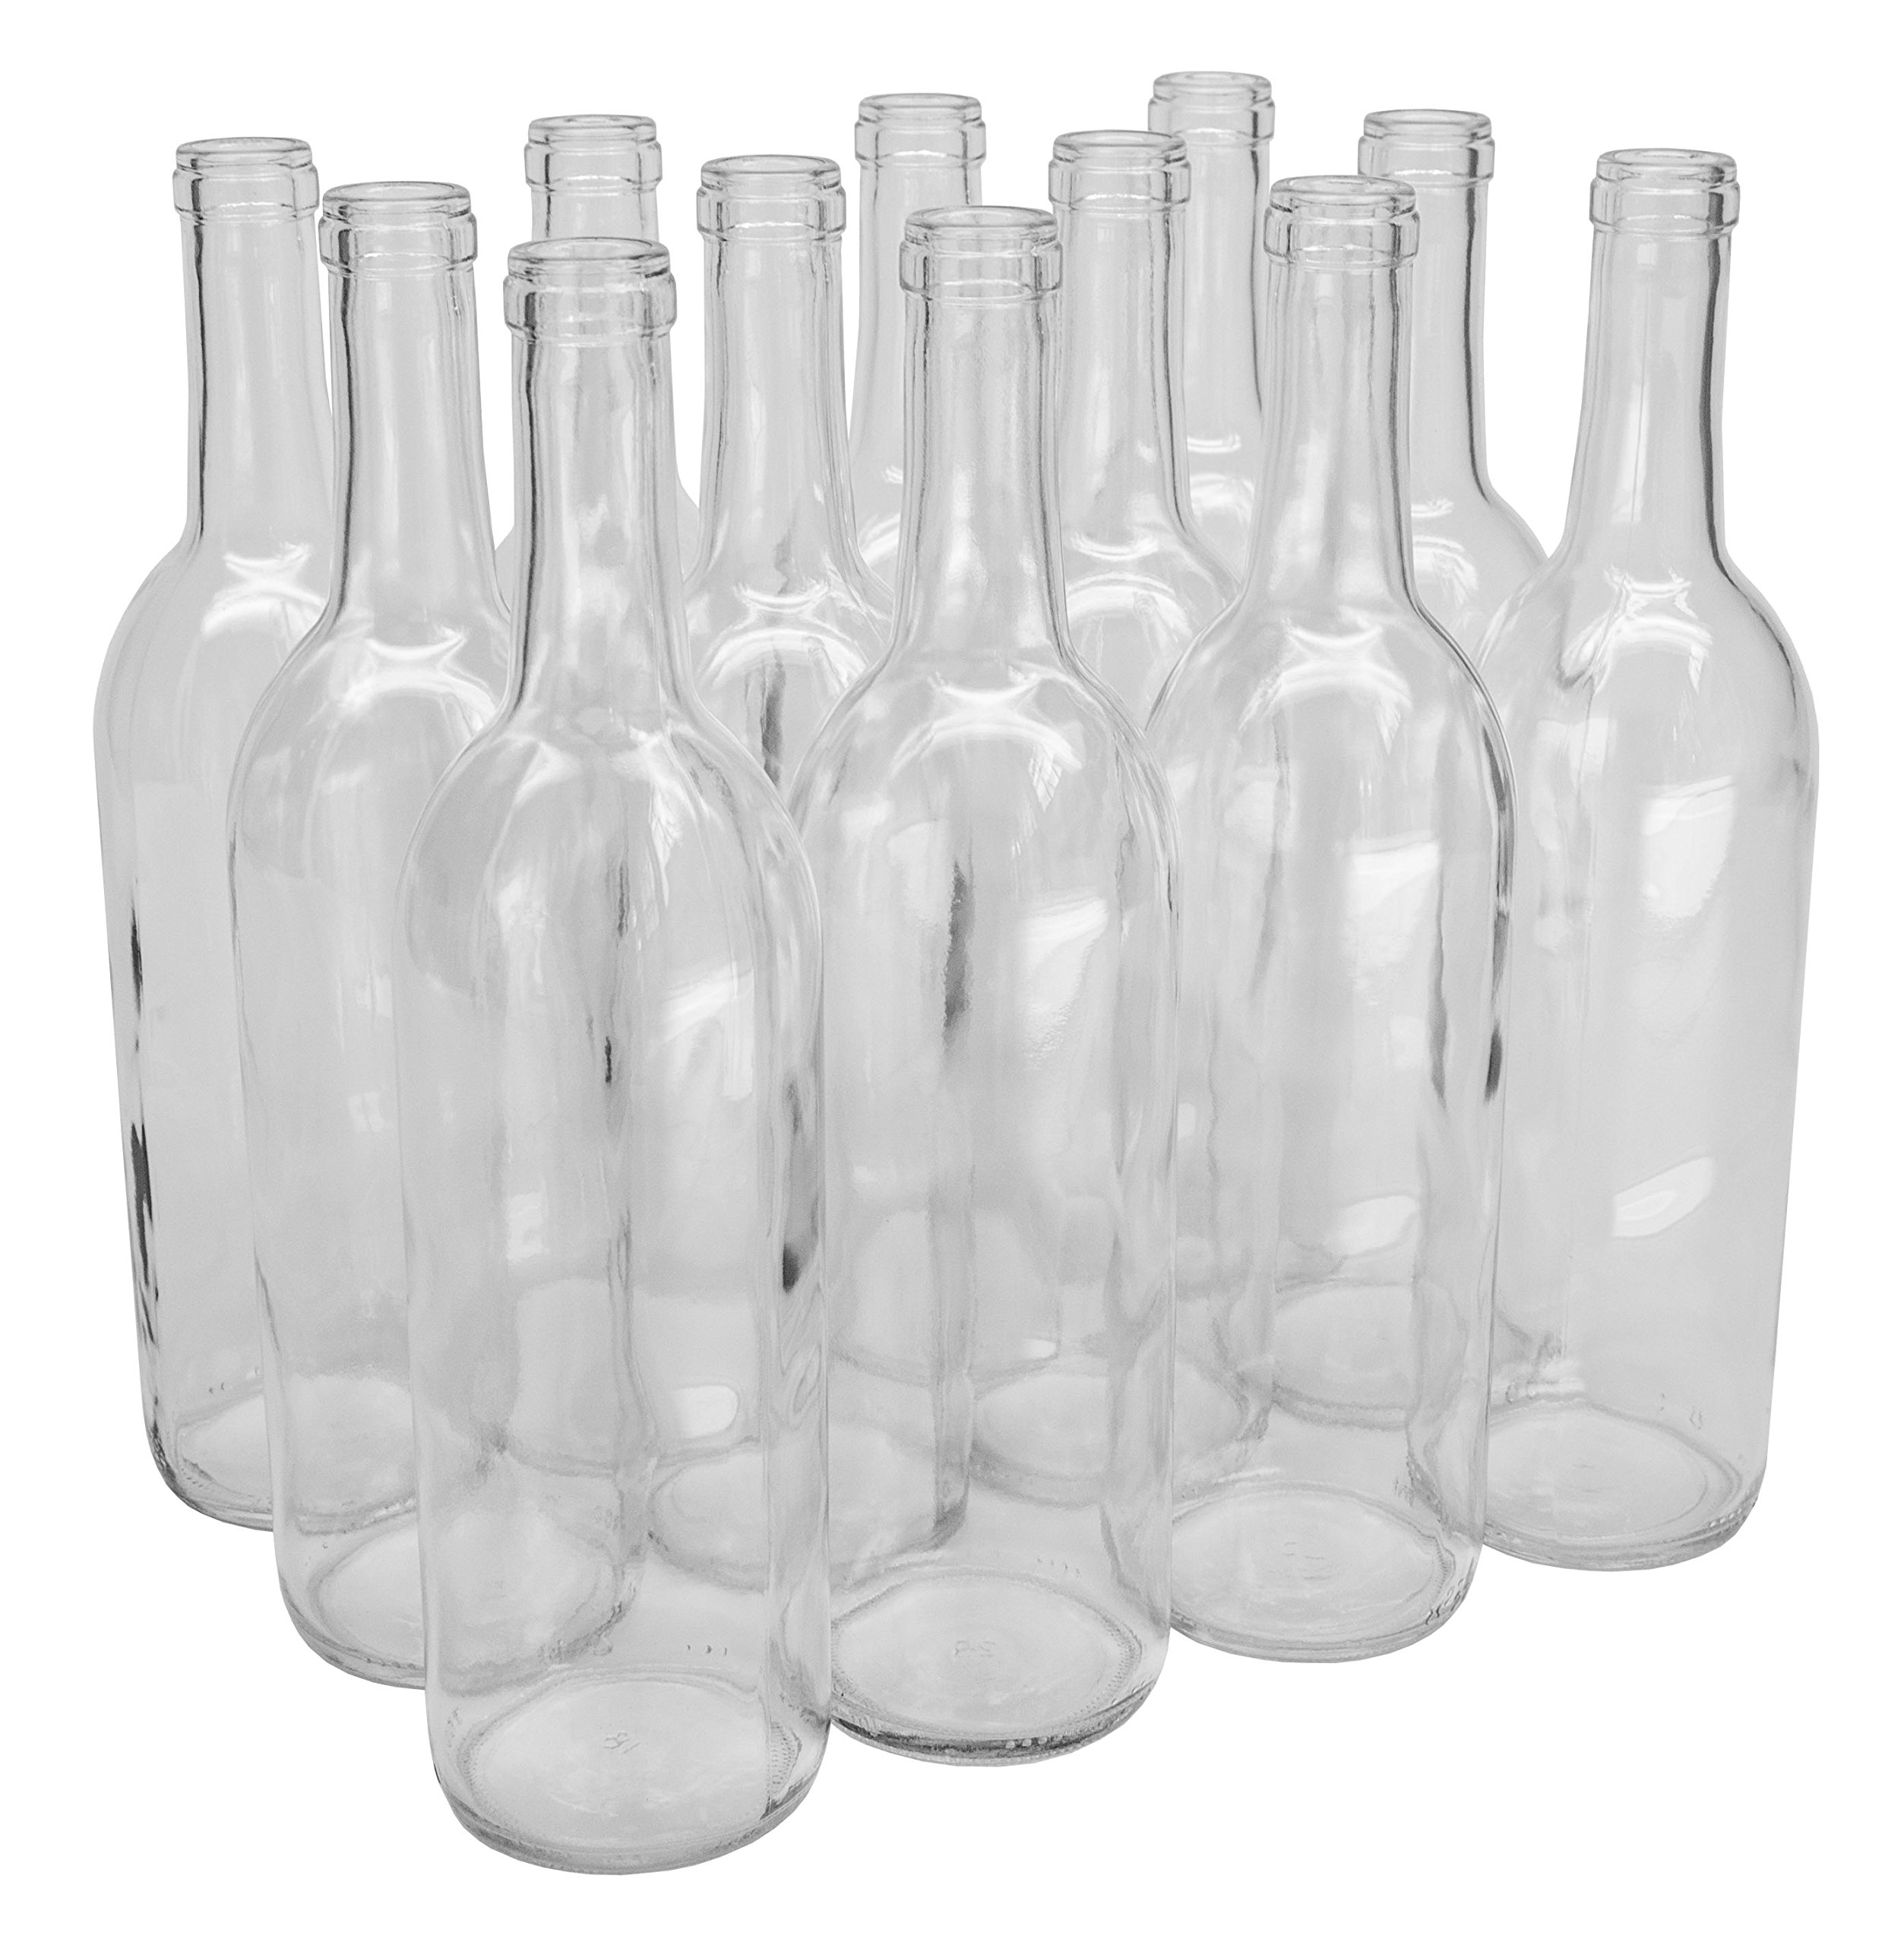 North Mountain Supply 750ml Glass Bordeaux Wine Bottle Flat-Bottomed Cork Finish - Case of 12 - Clear/Flint by North Mountain Supply